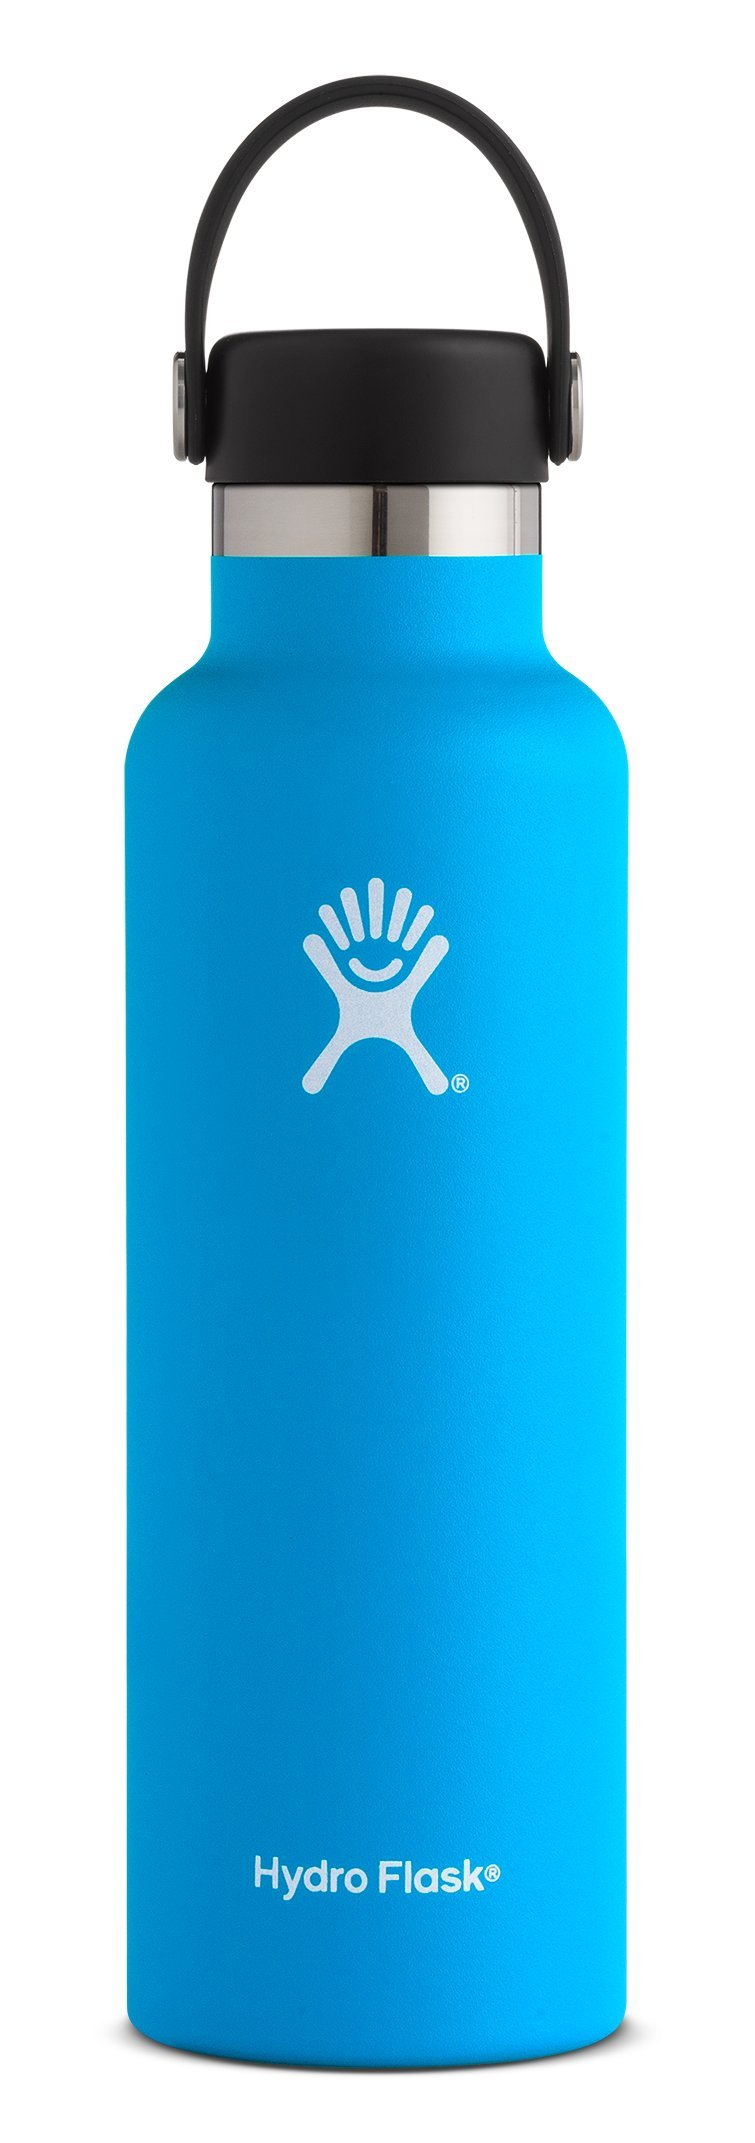 Hydro Flask 21 oz Double Wall Vacuum Insulated Stainless Steel Leak Proof Sports Water Bottle, Standard Mouth with BPA Free Flex Cap, Pacific